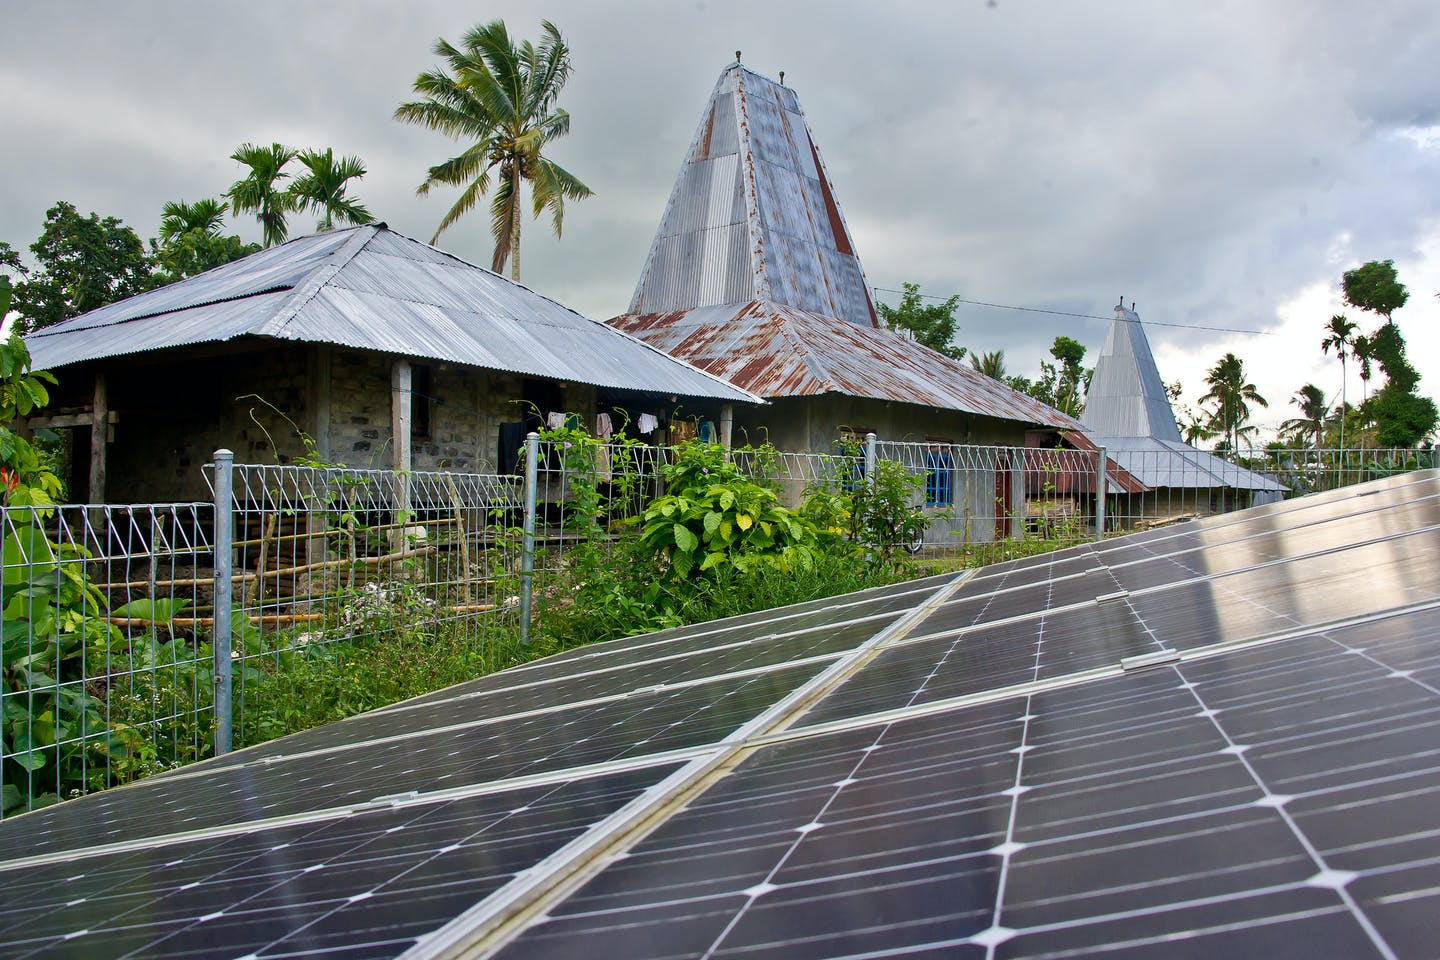 Government-installed solar panels on Sumba Island Indonesia